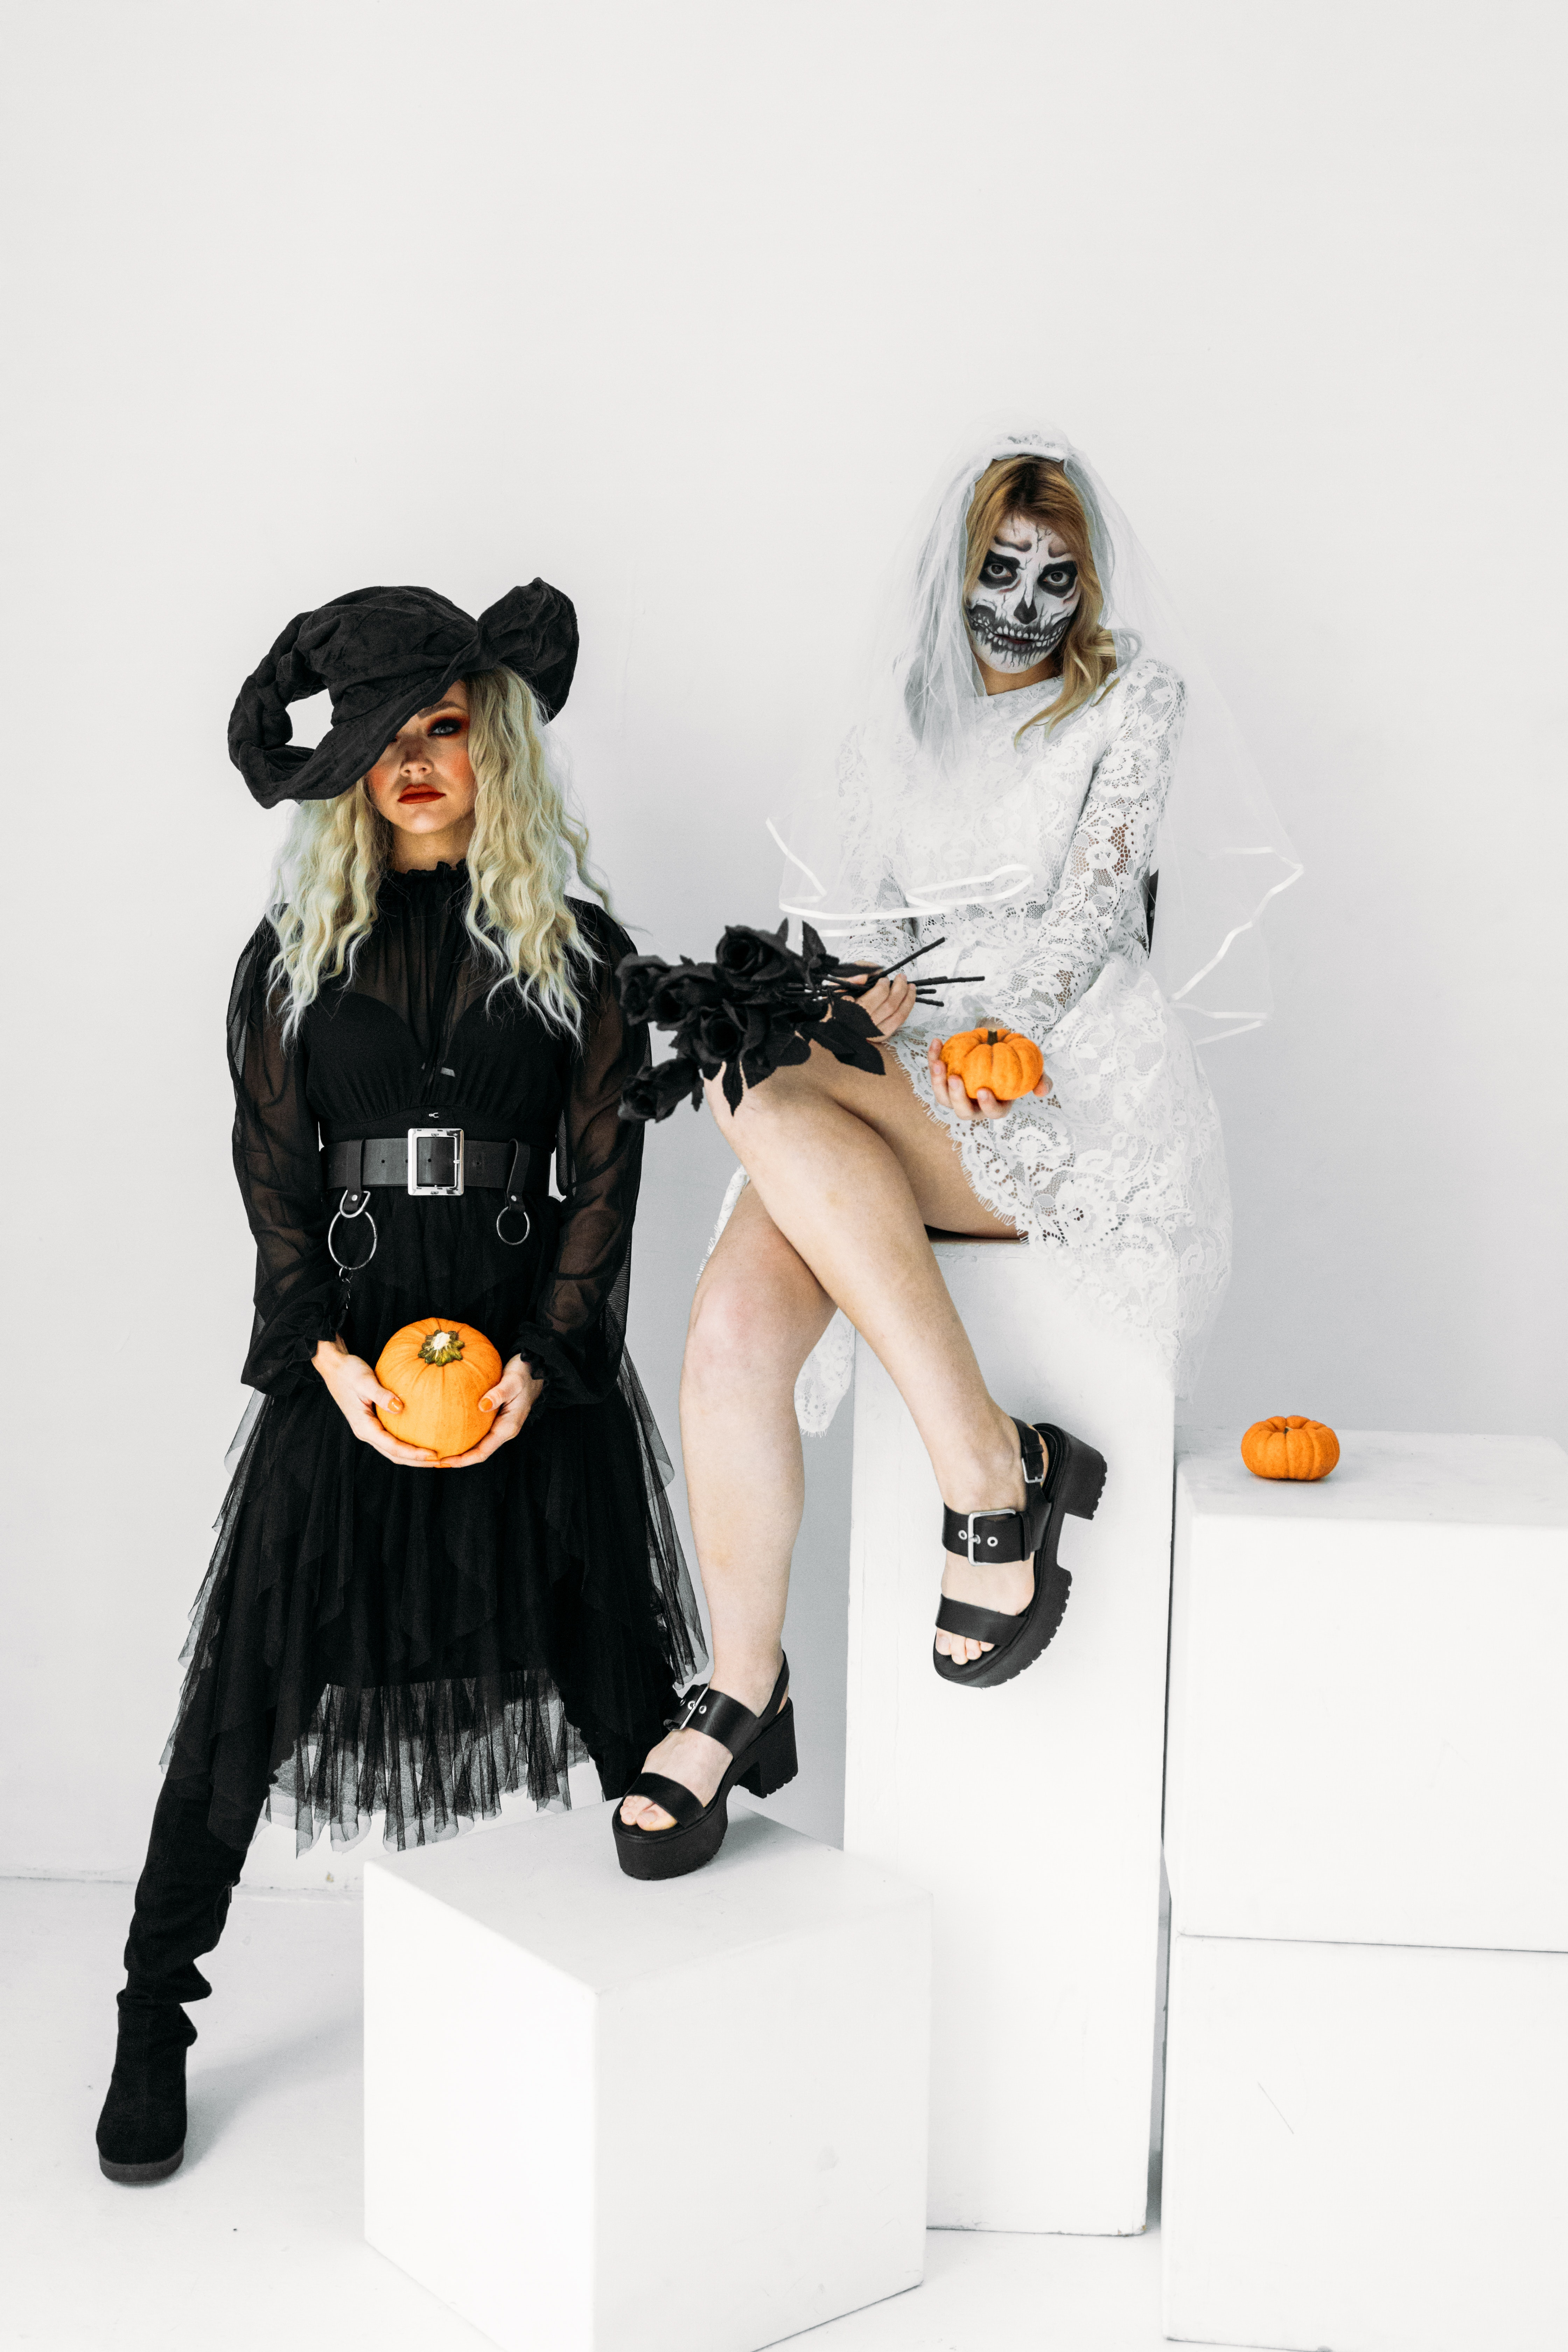 Halloween Costumes For Two Women.Two Women Wearing Halloween Costumes Free Stock Photo